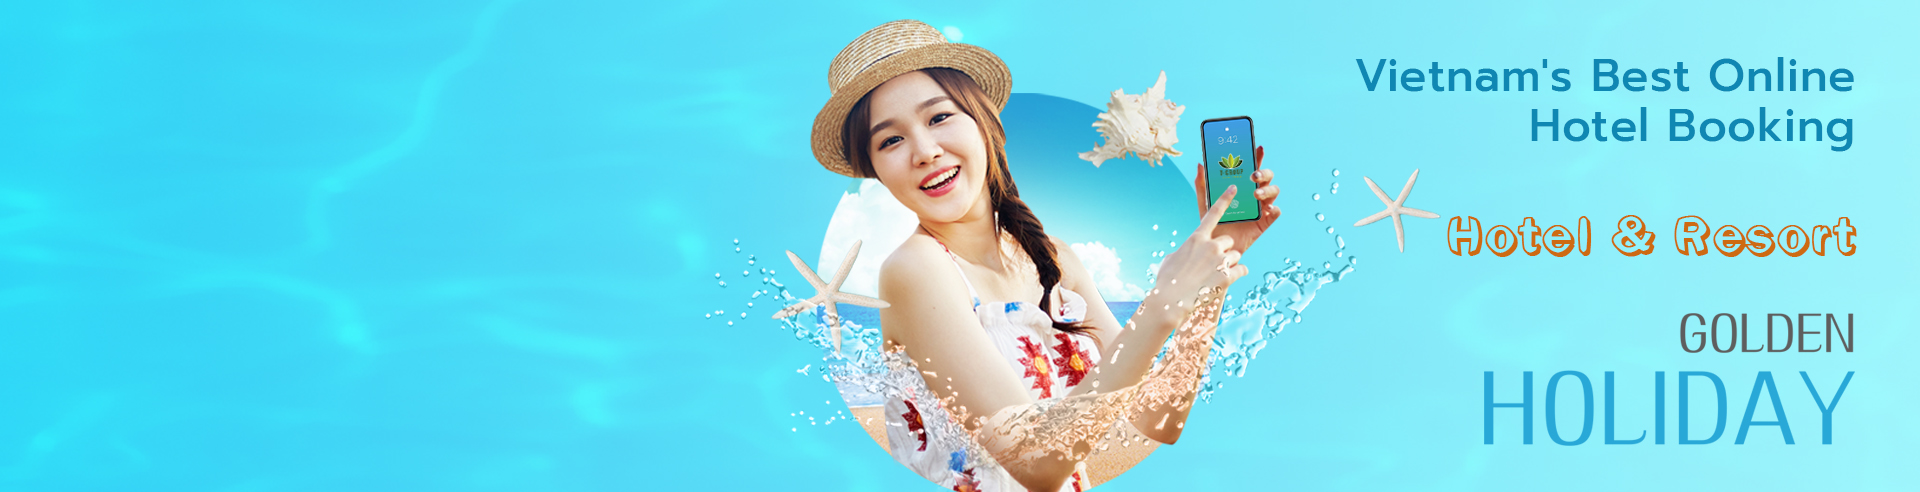 Vietnam's Best Online Hotel Booking Site